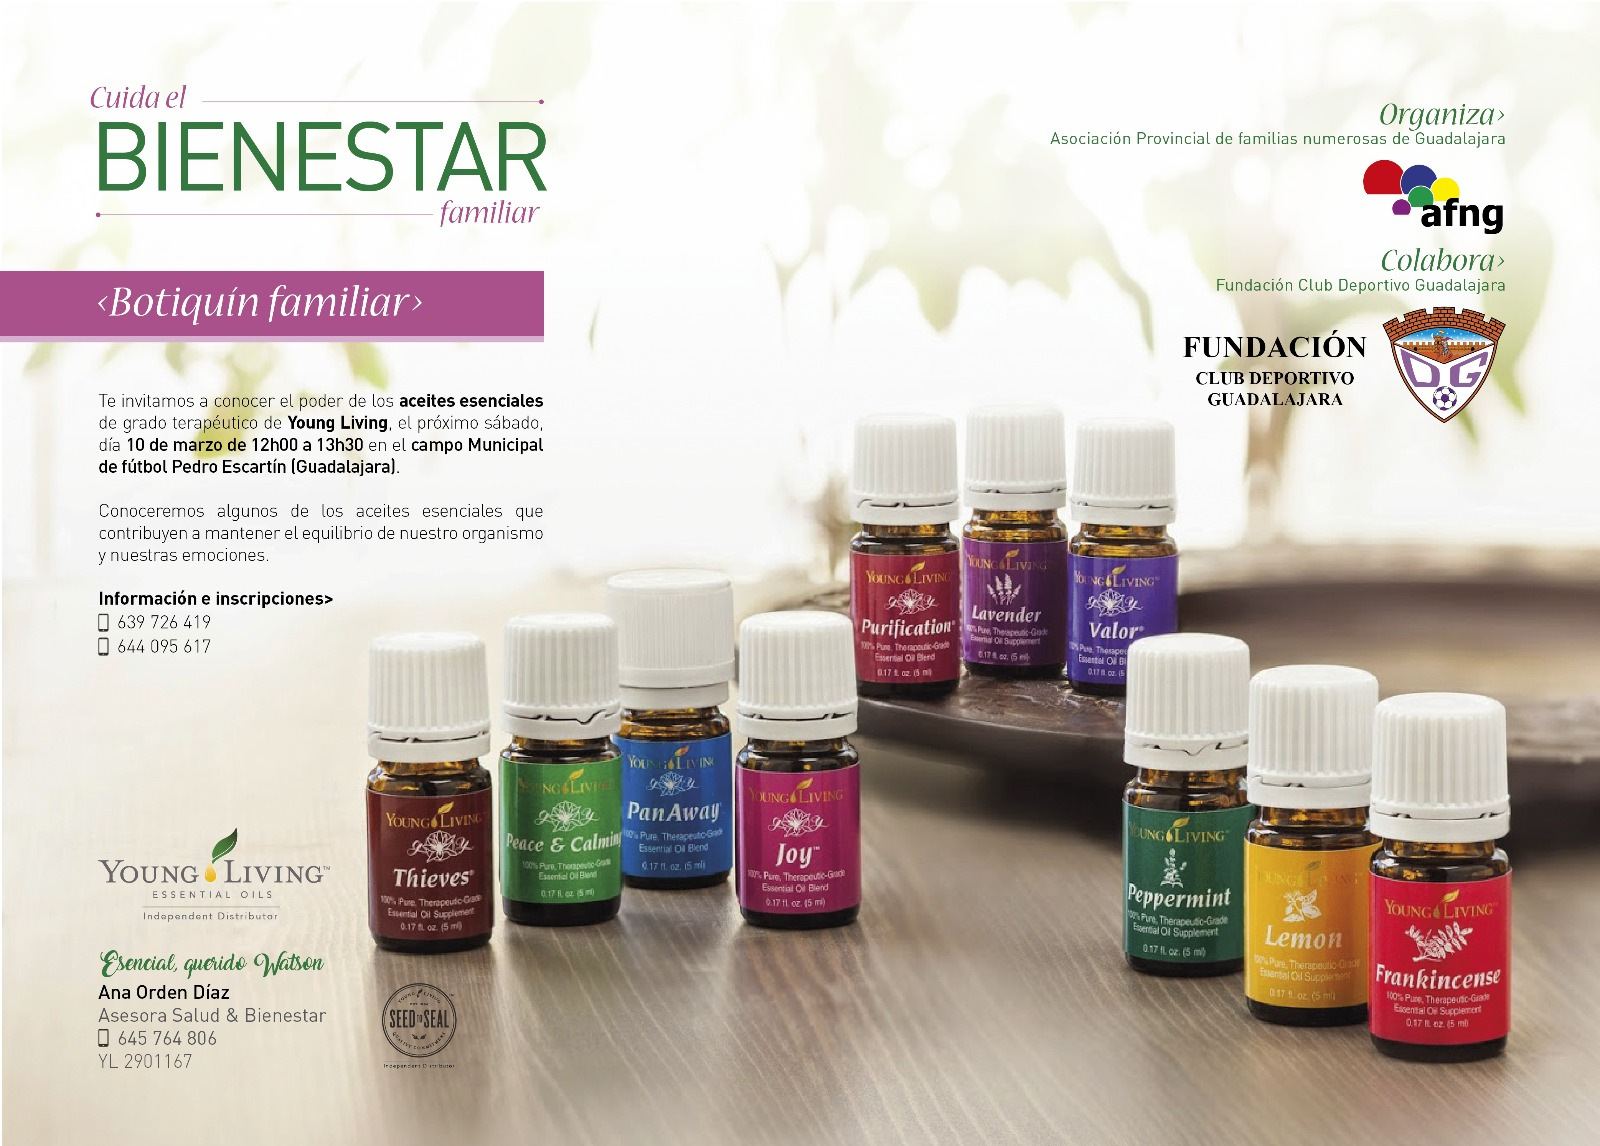 Cuida el Bienestar familiar con Young Living